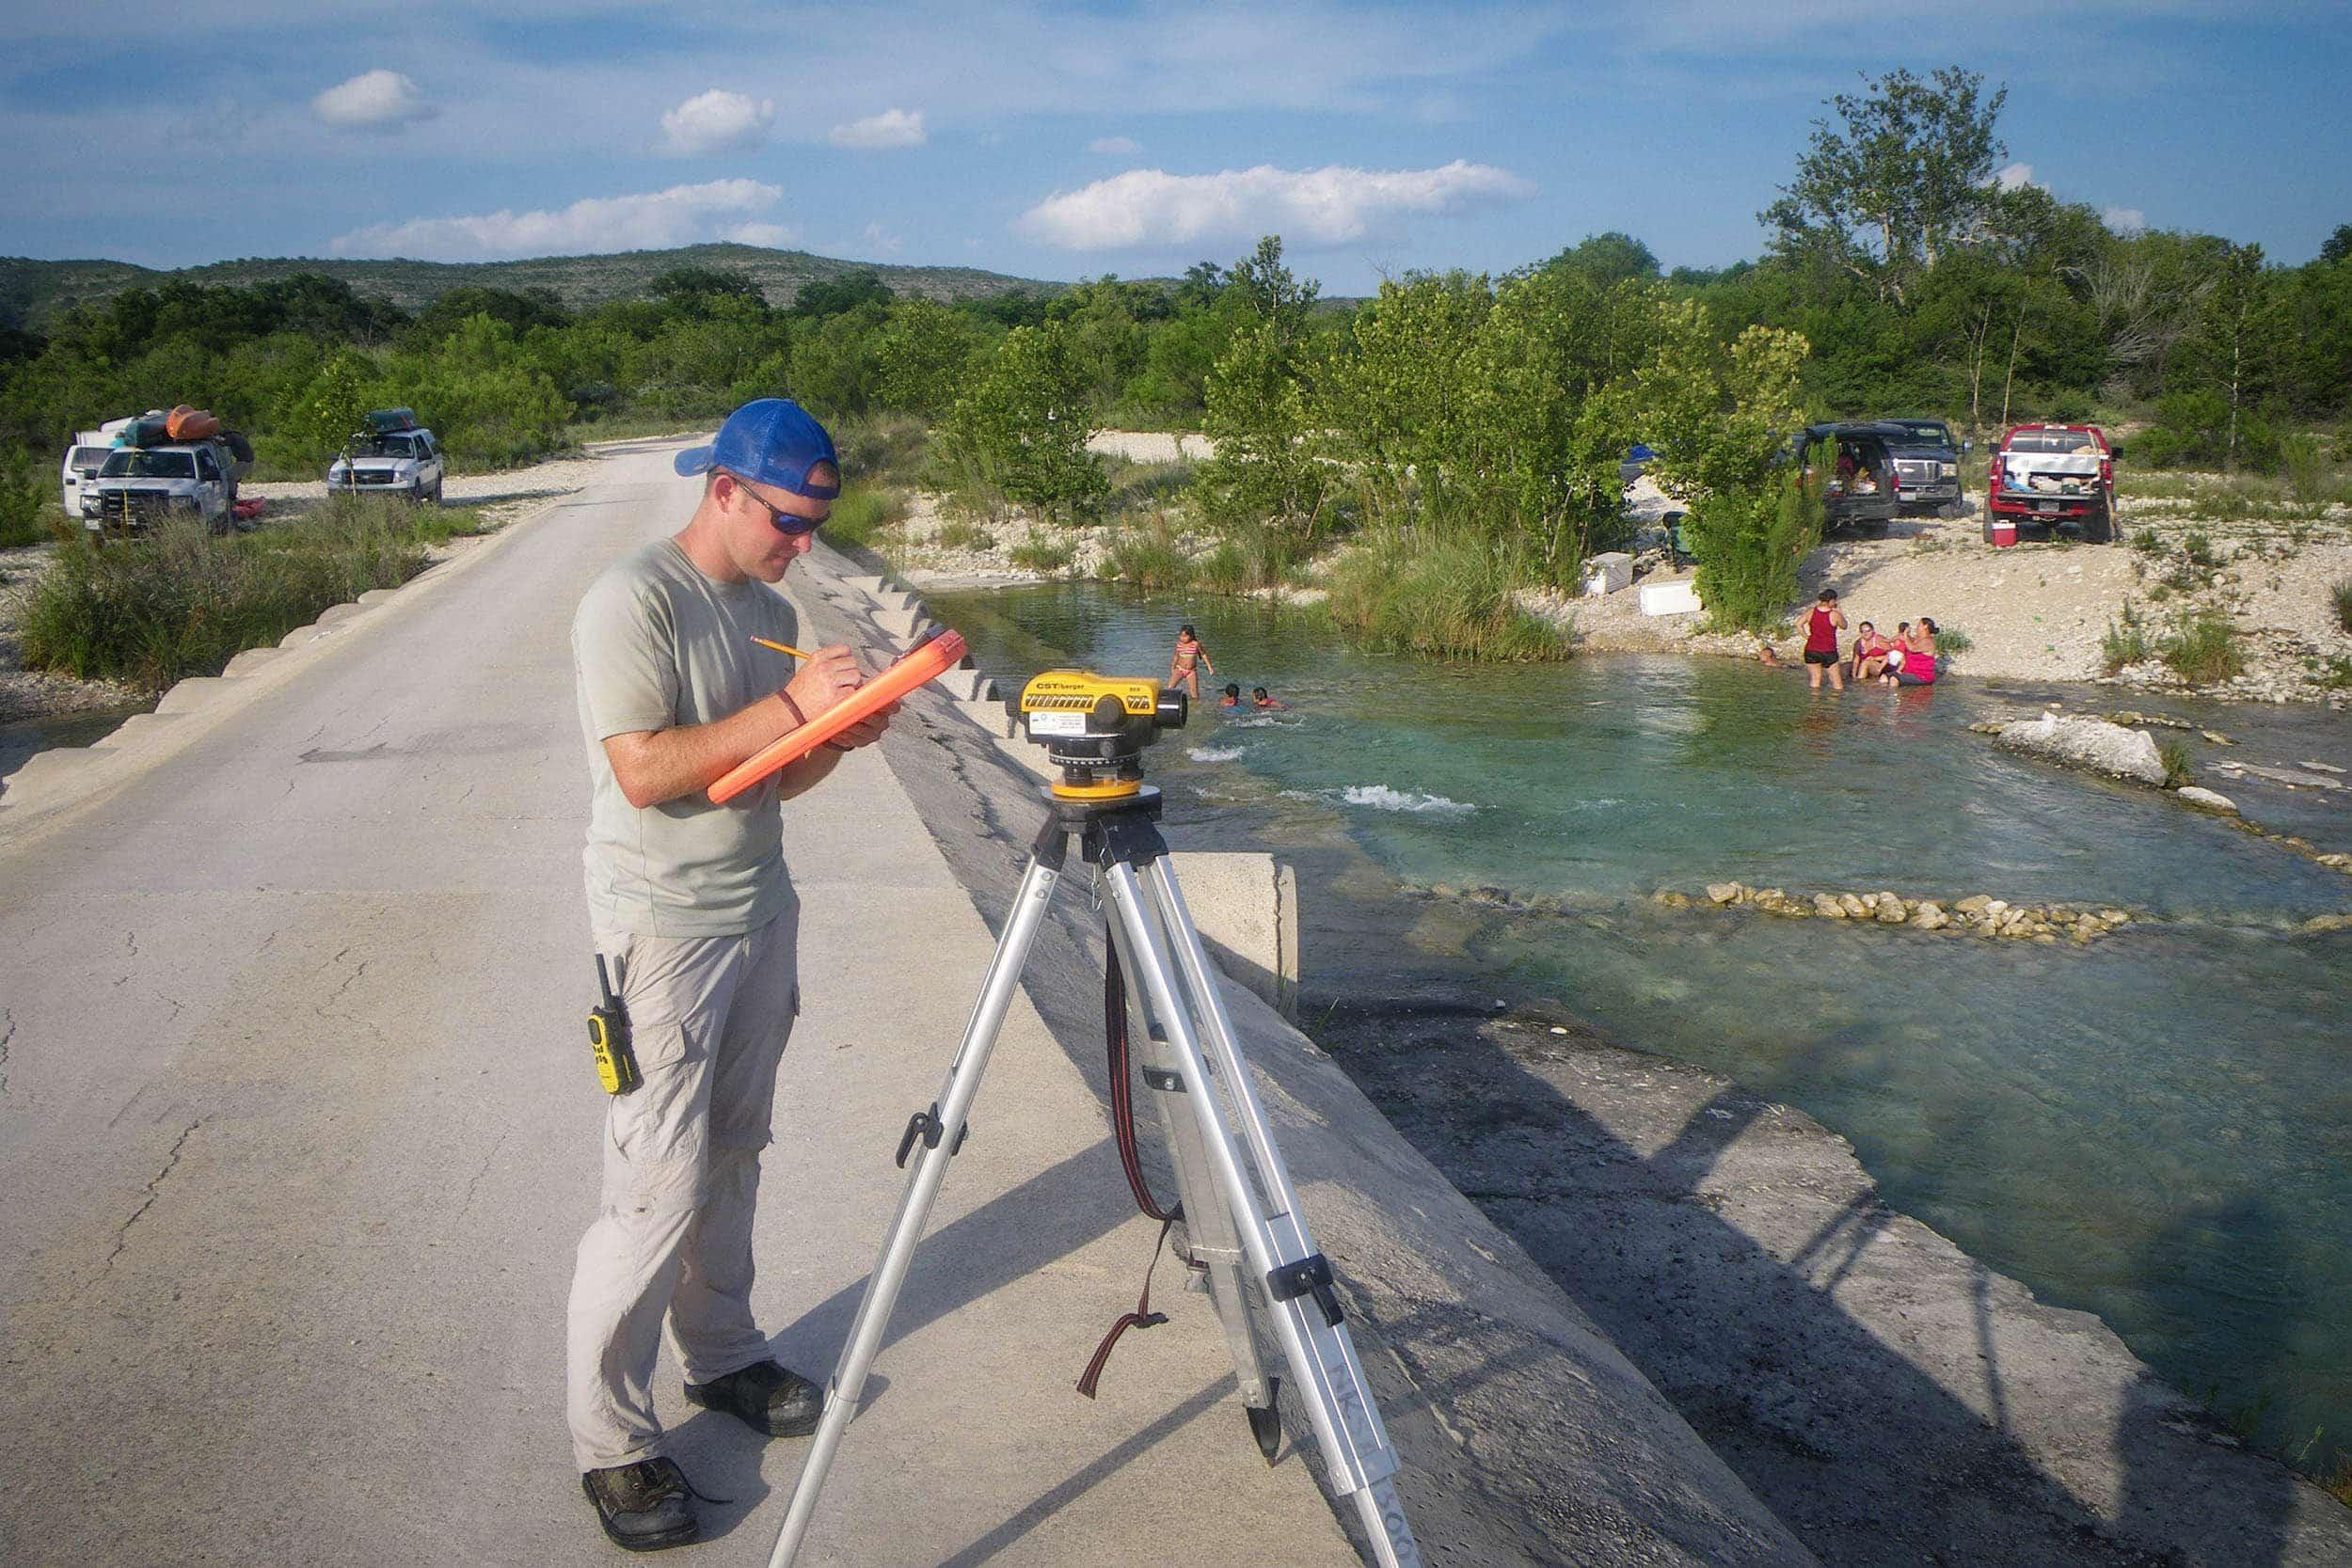 Stephen Curtis takes measurements at the Nueces River for the National Rivers and Streams Assessment.